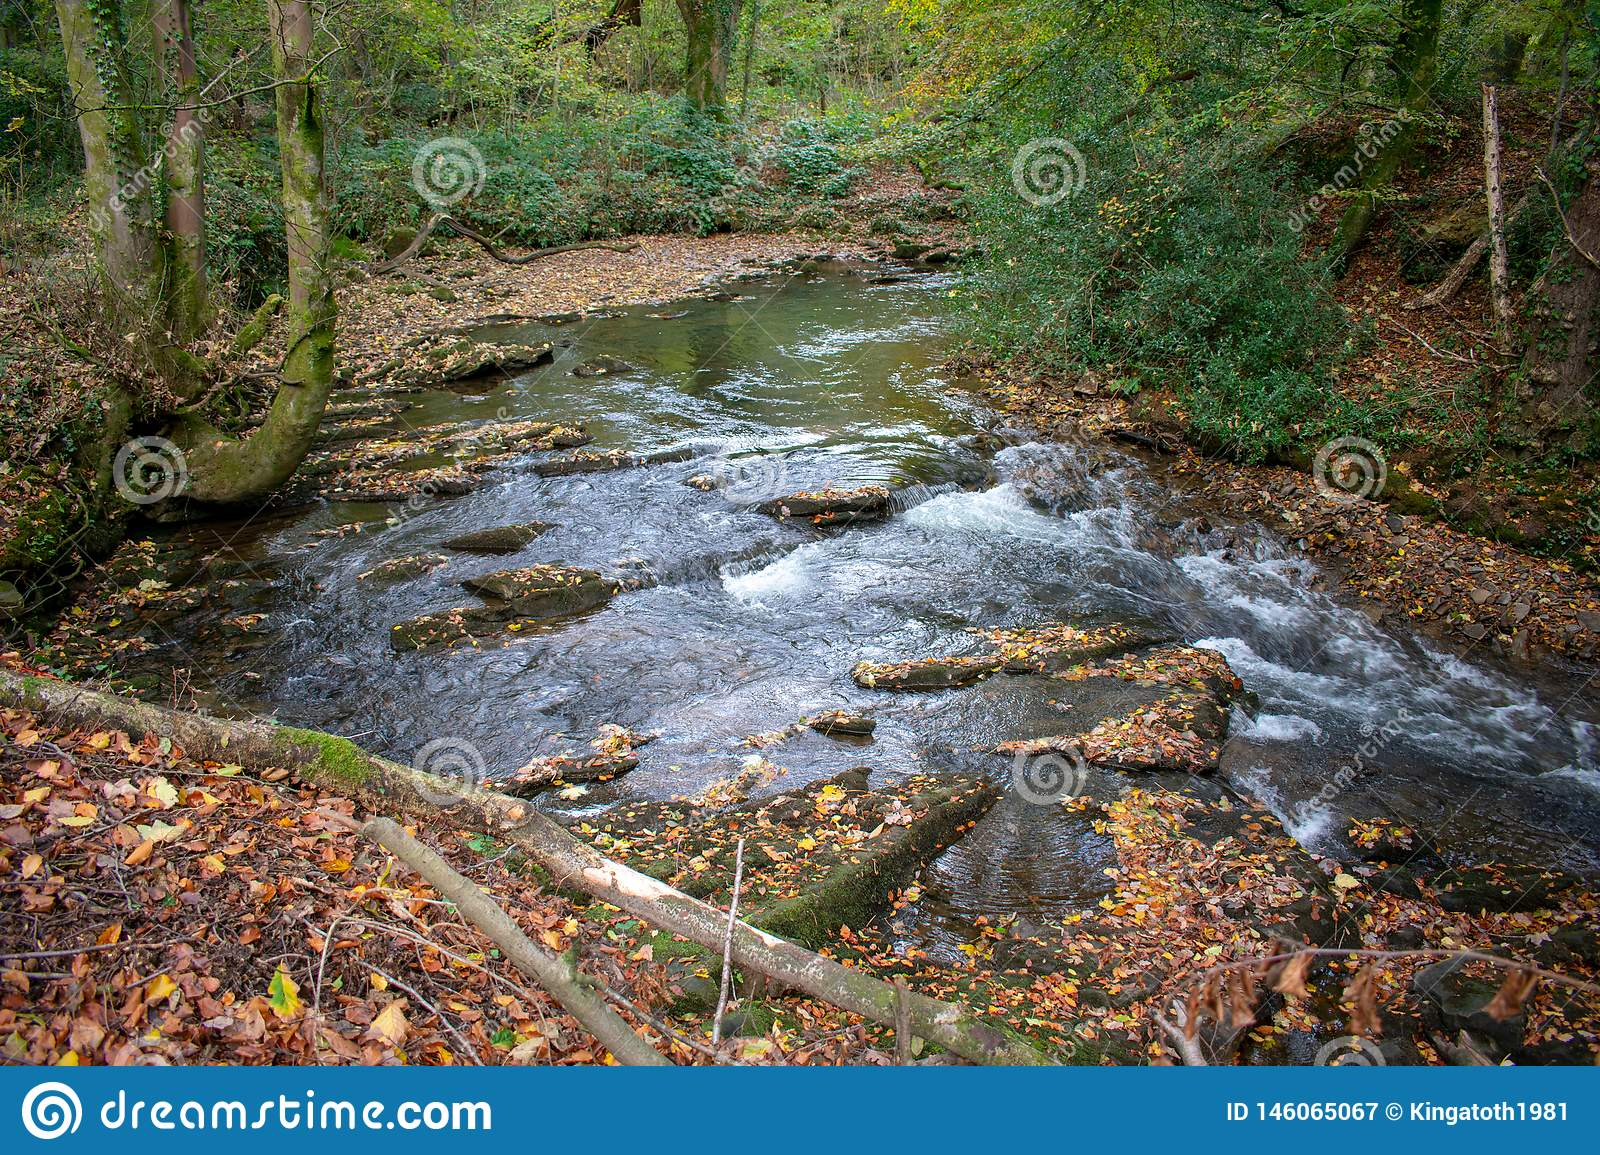 Stream running through a Welsh forest